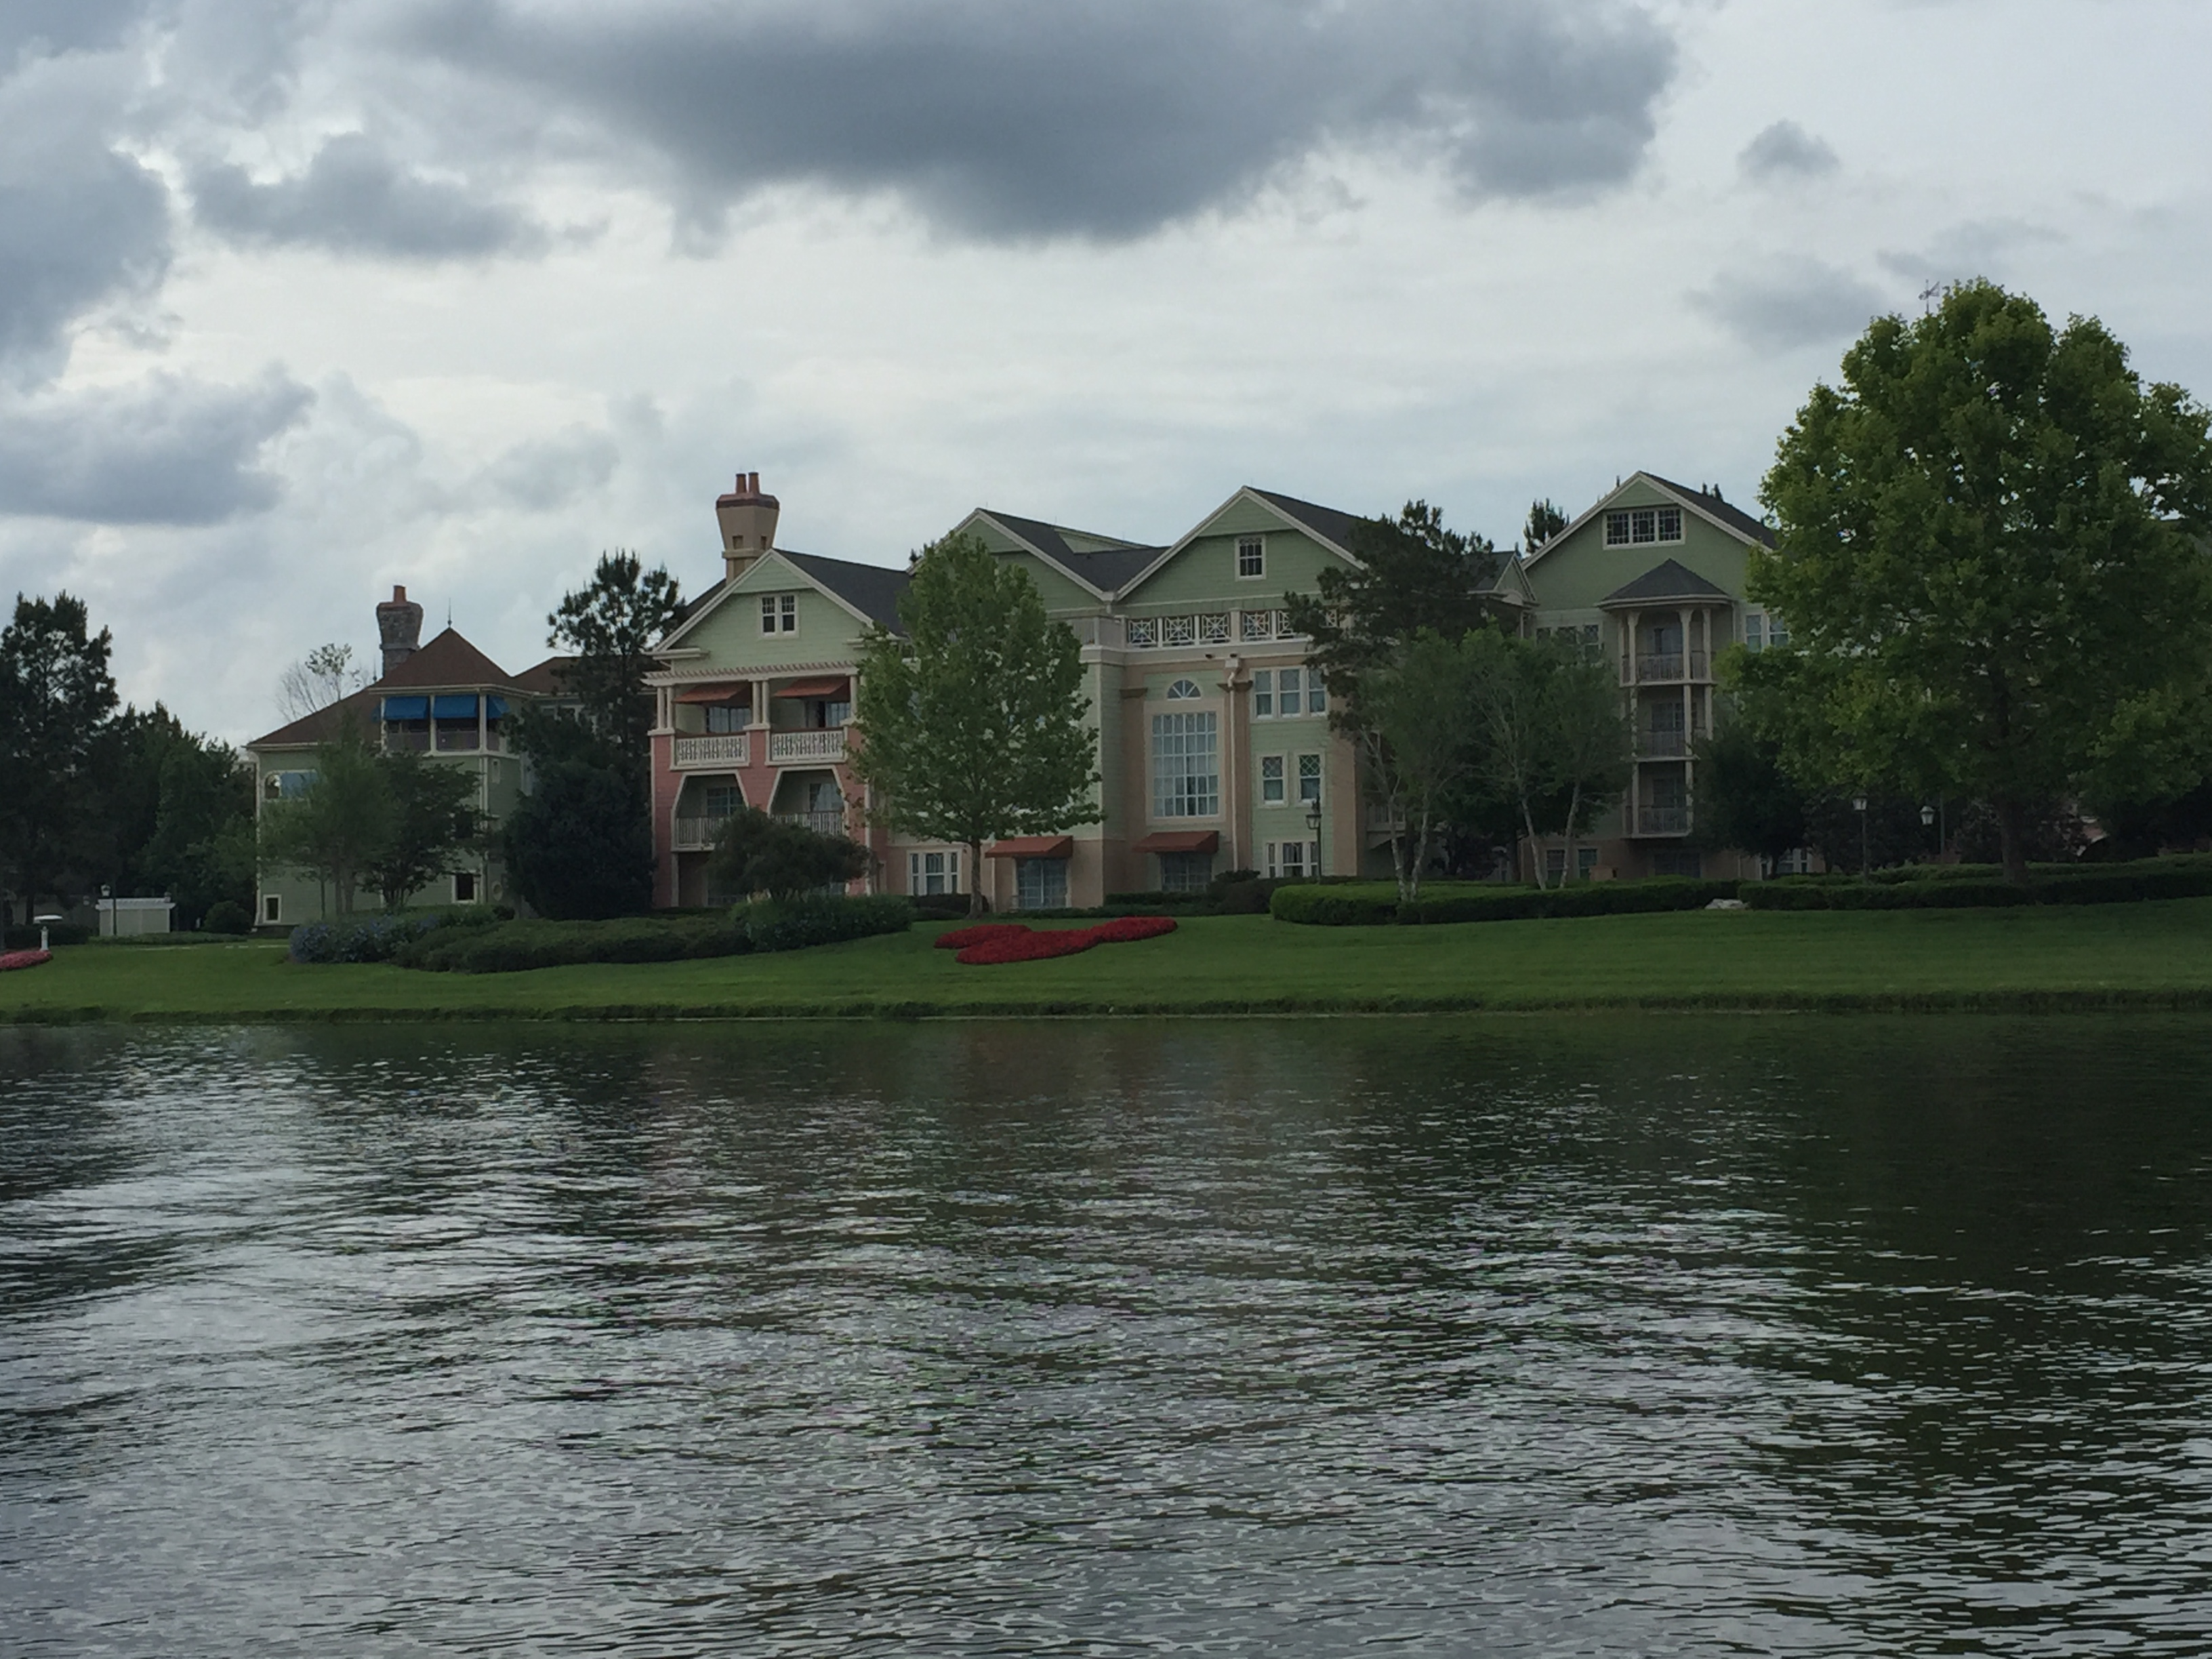 A Review of Our Disney Home: Saratoga Springs Resort